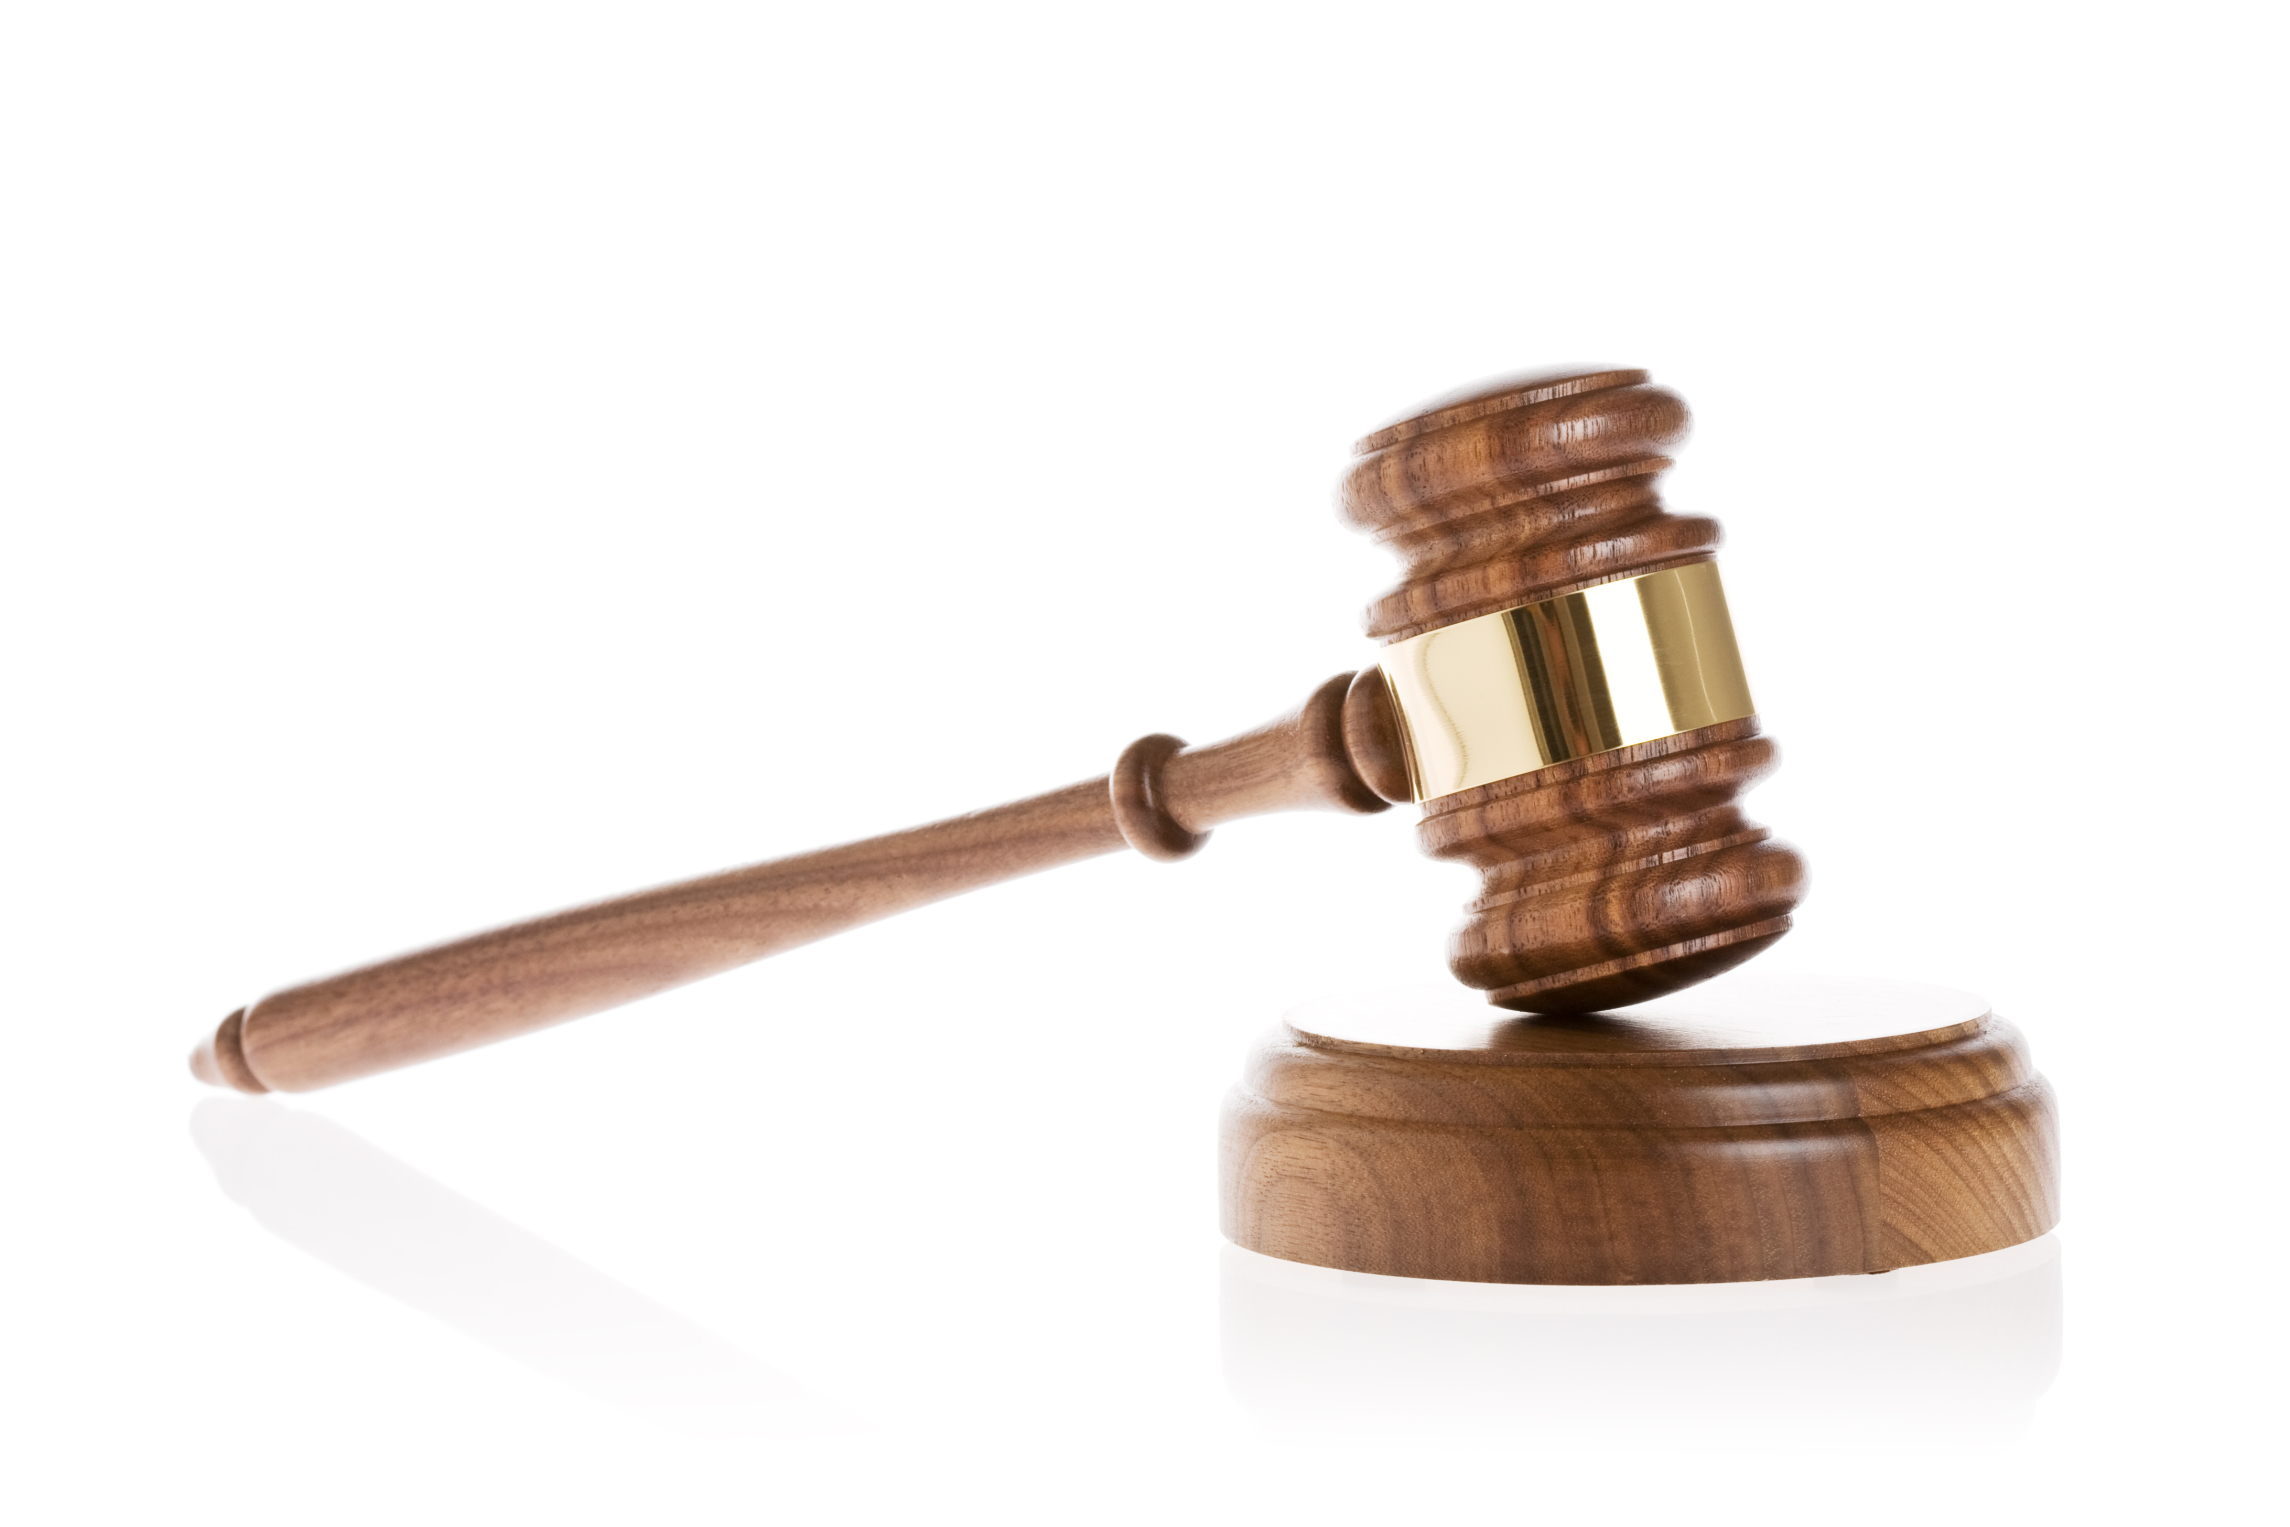 Free courtroom cliparts download. Gavel clipart jpeg